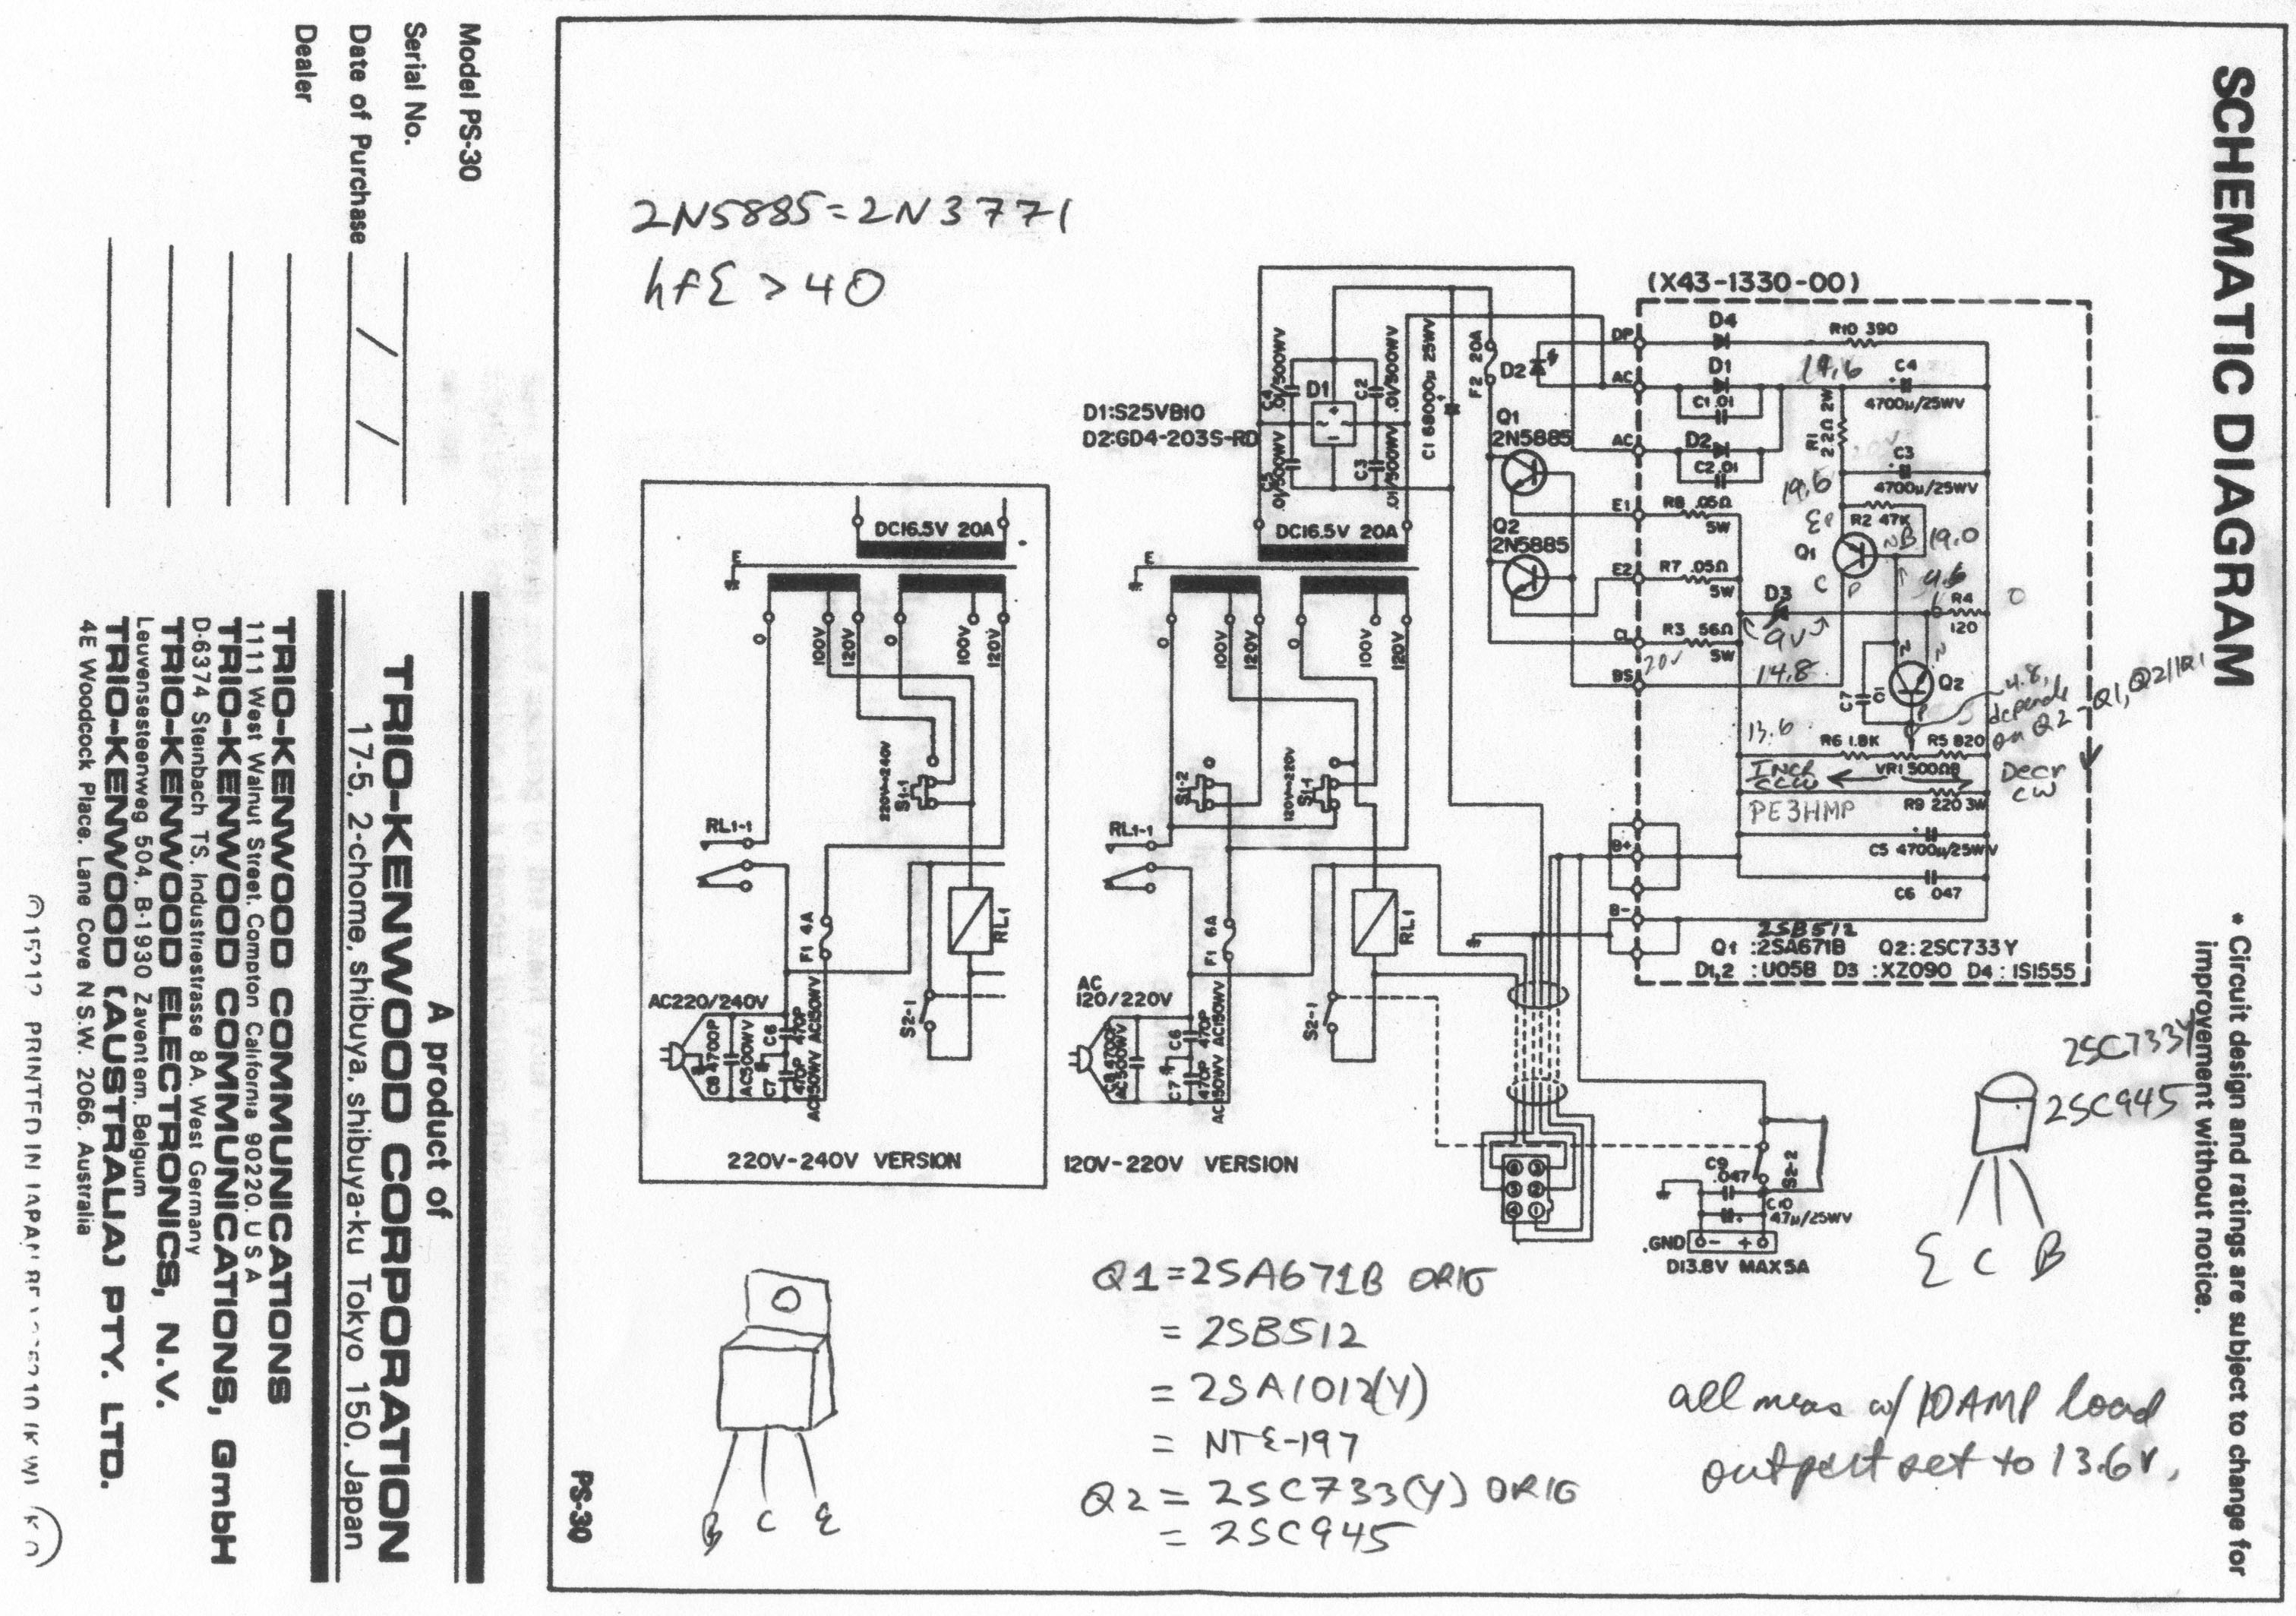 Famous Ic Schematic Vignette Everything You Need To Know About Sensor Circuit Page 15 Sensors Detectors Circuits Nextgr Ps Basic Guide Wiring Diagram